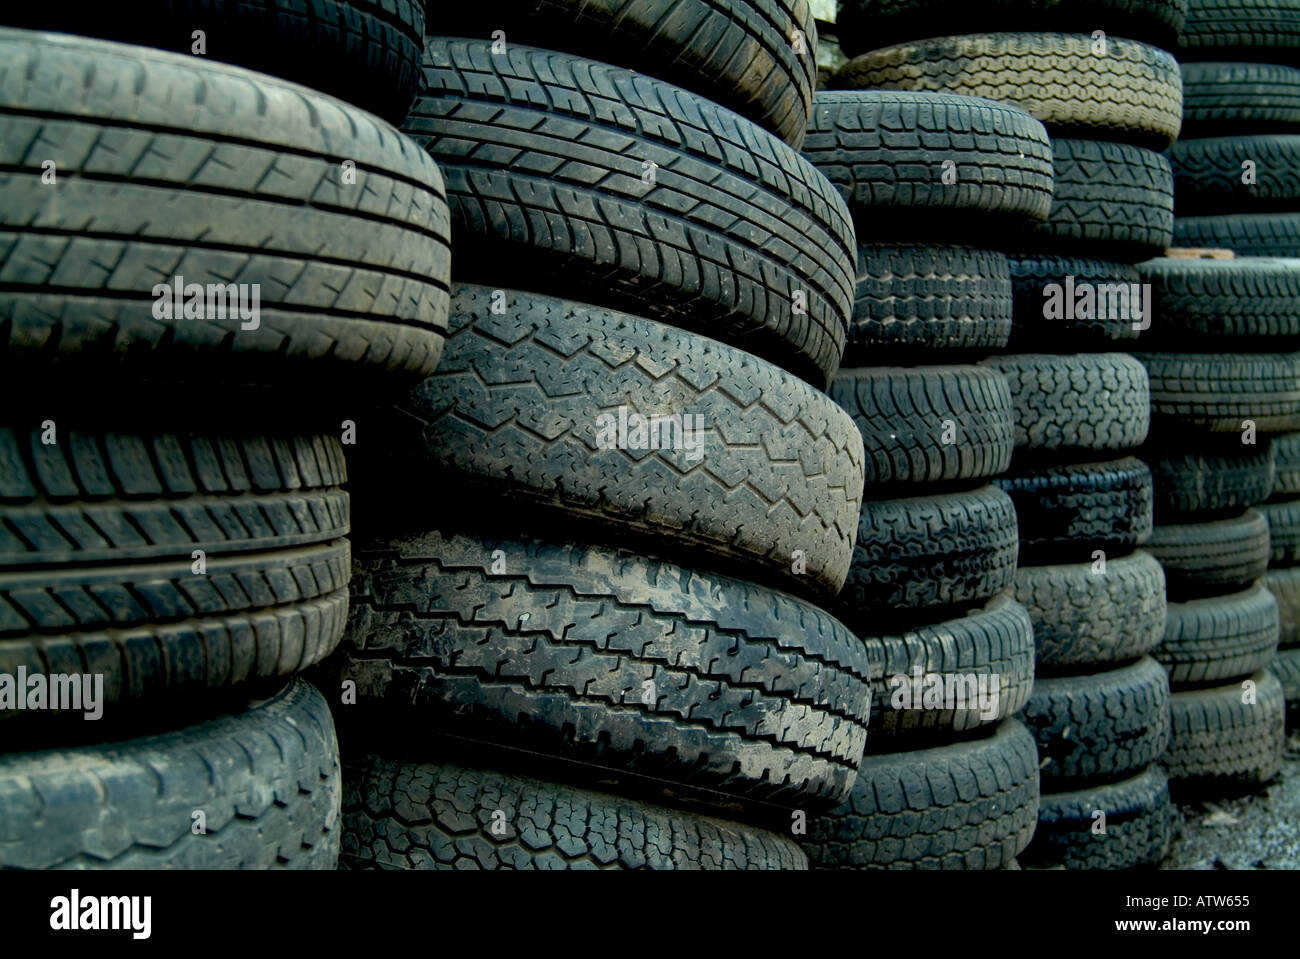 stack of used tyres - Stock Image